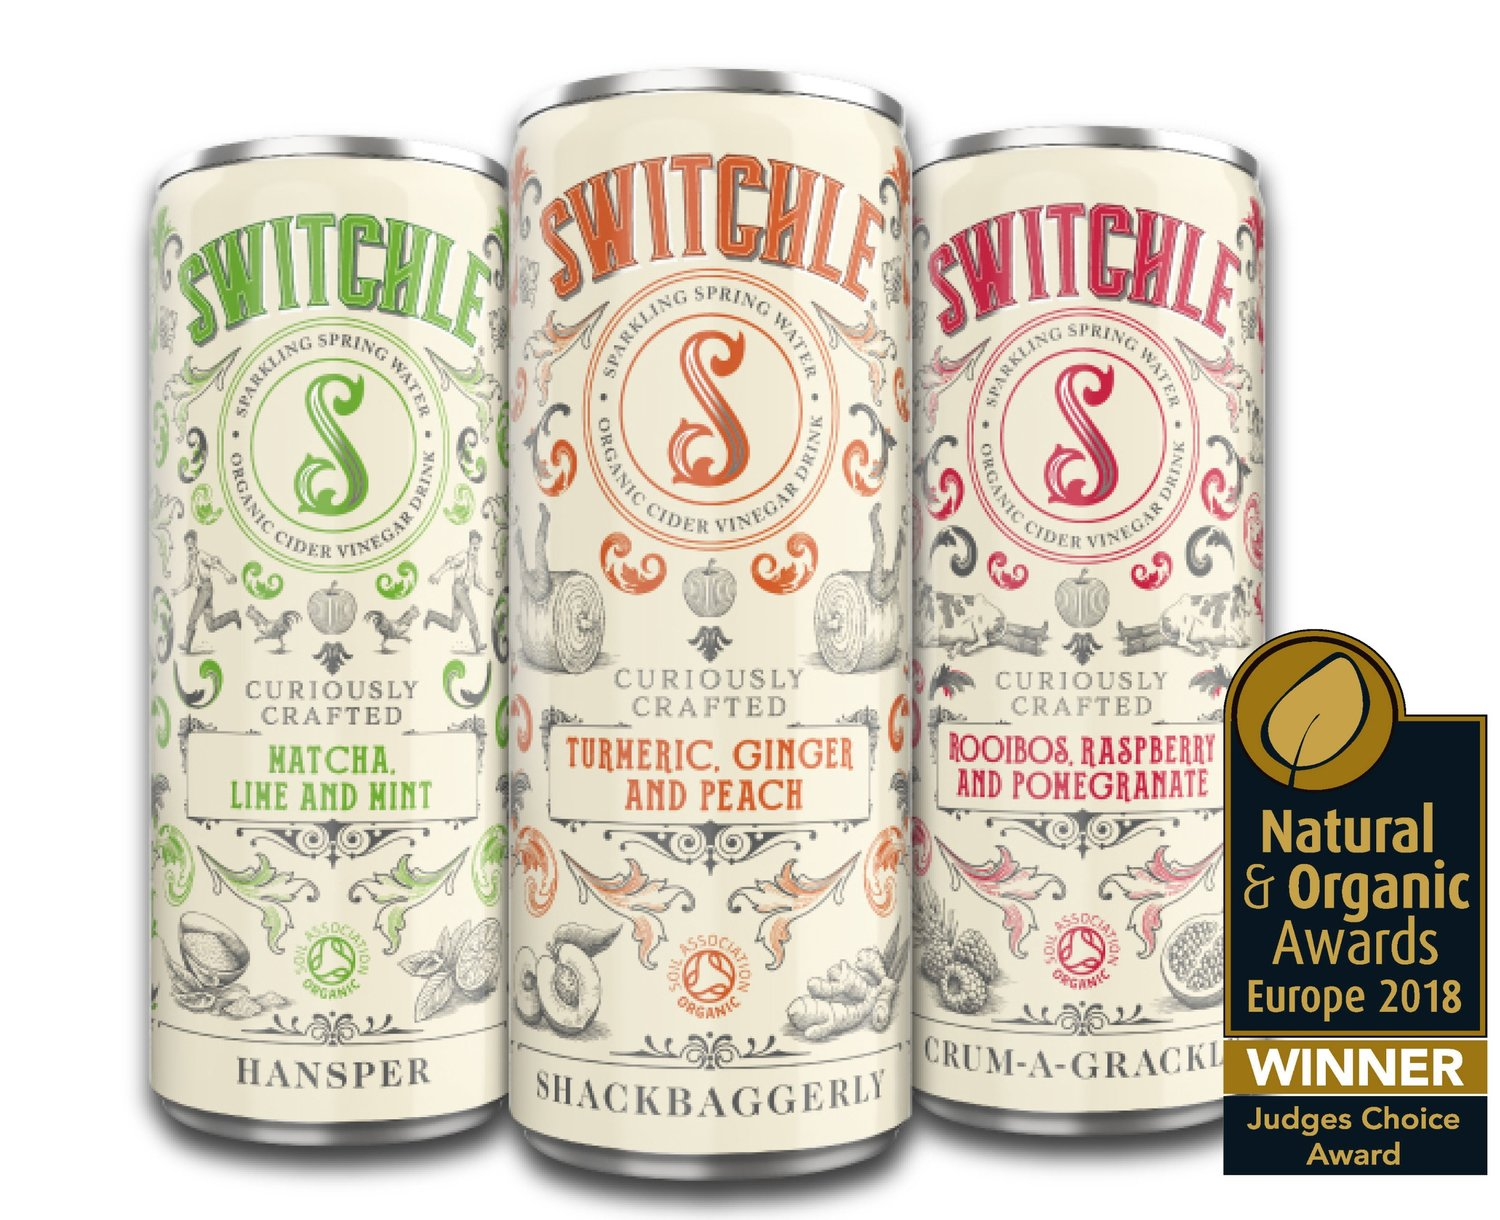 Switchle wins 'Judges Choice Award' — HEALTHY SALES GROUP